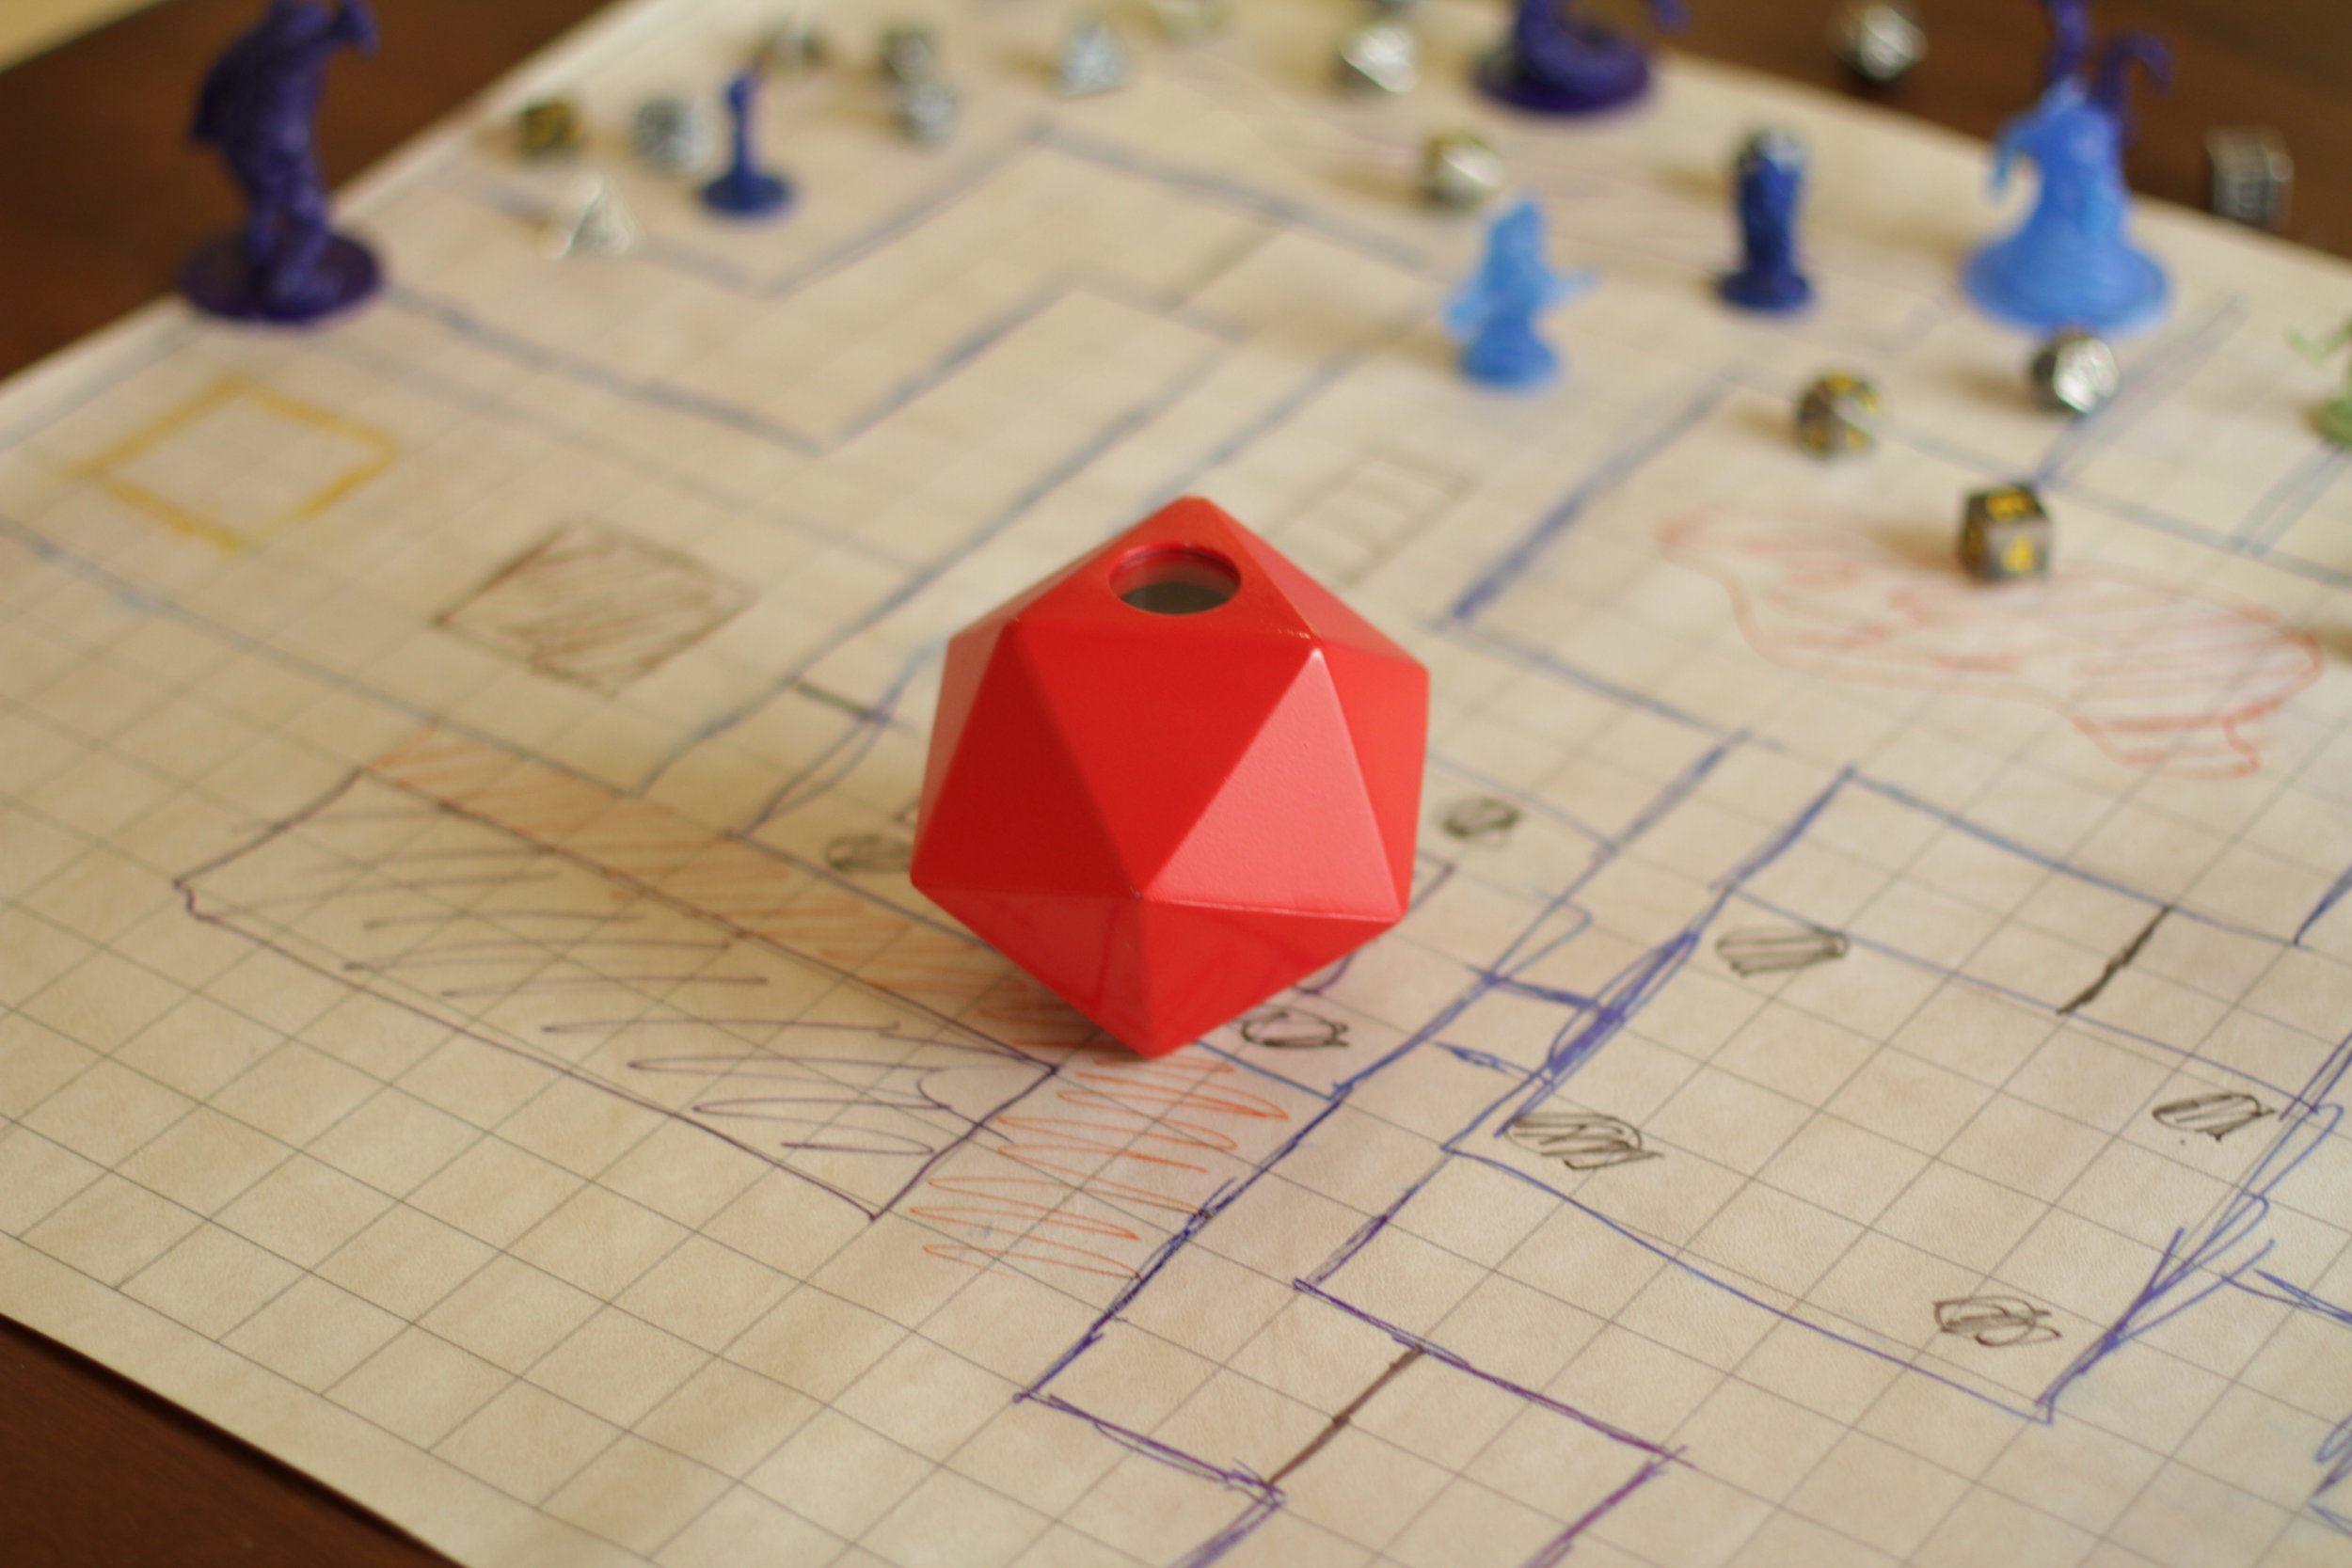 Designed an electronic dice rolling toy for use in table top role playing games.